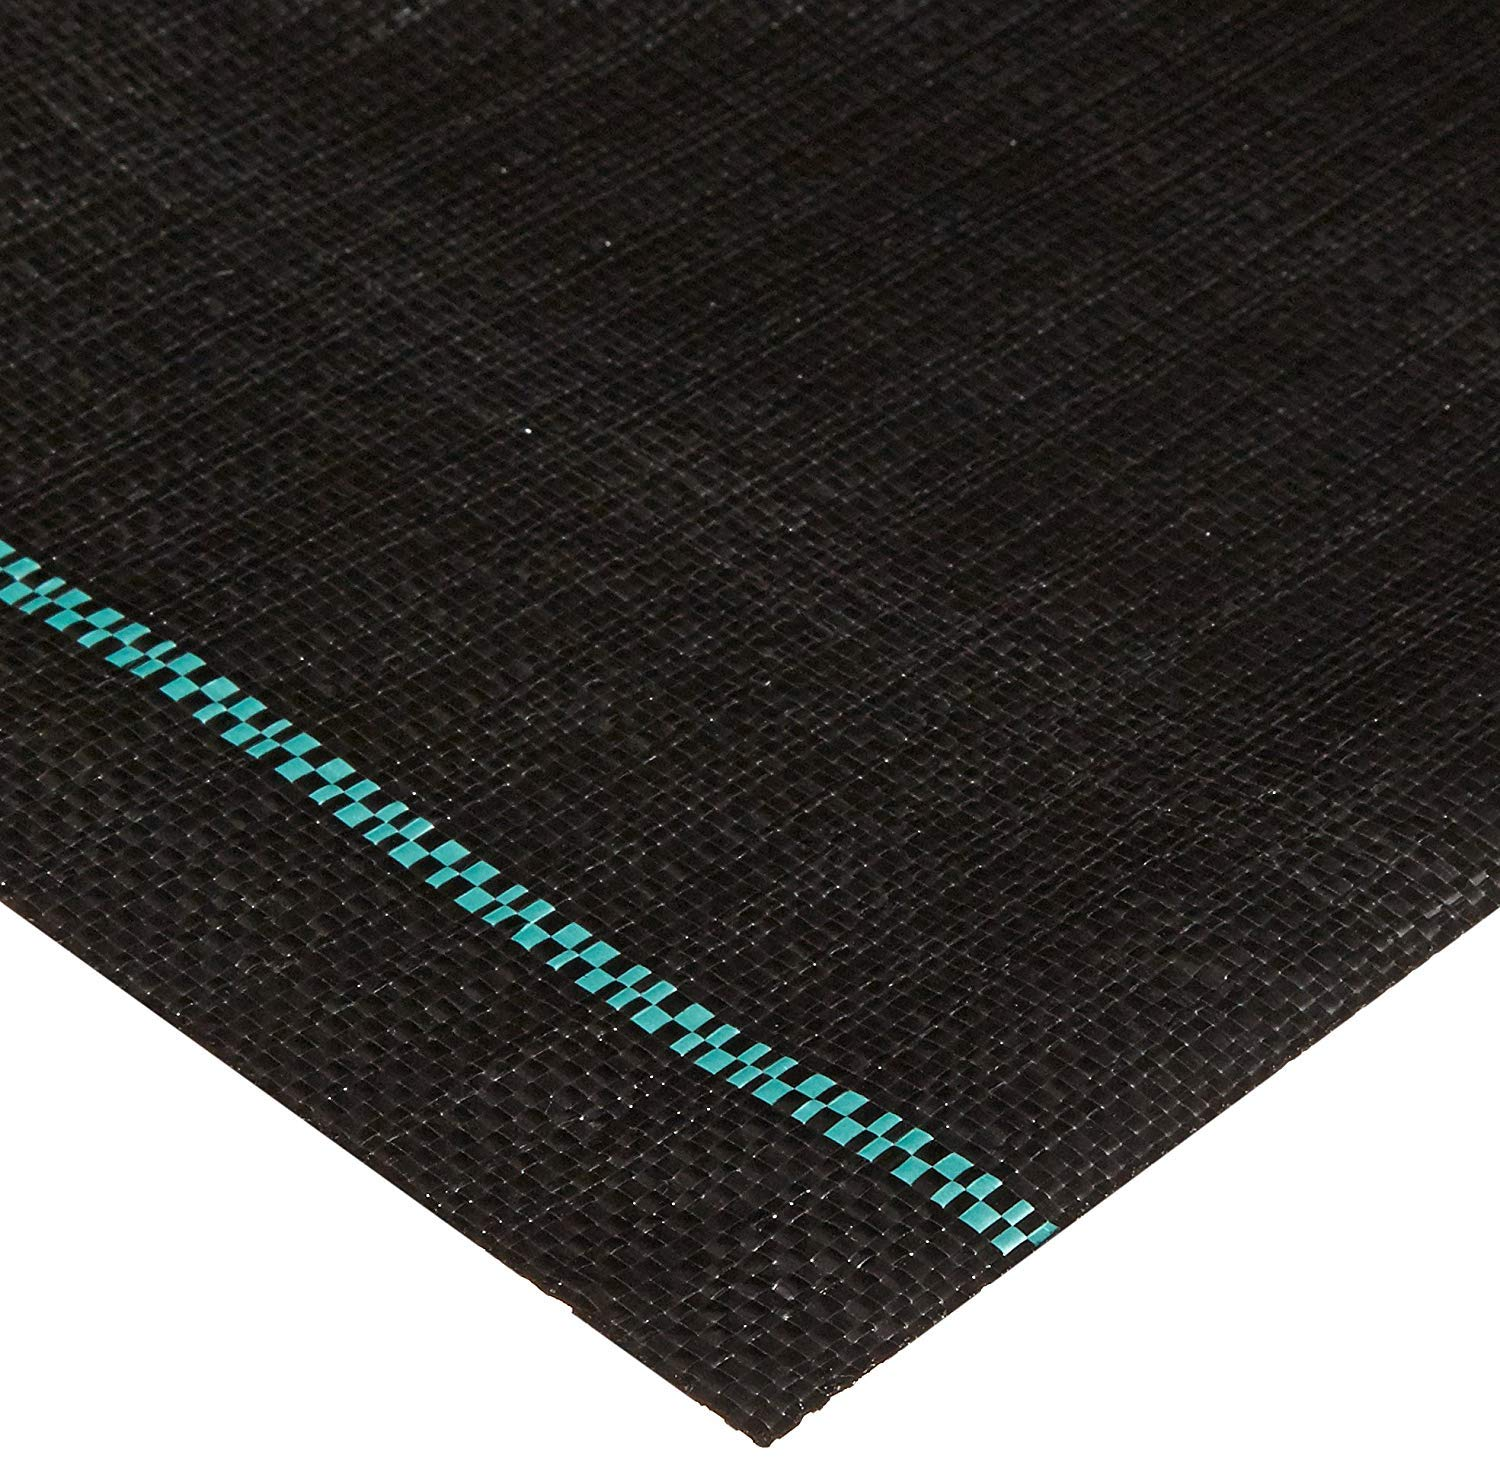 Mutual WF200 Tire Scrub Fabric Driveway Kit, 54' Length x 12-1/2' Width (Pack of 3) by Mutual Industries (Image #2)